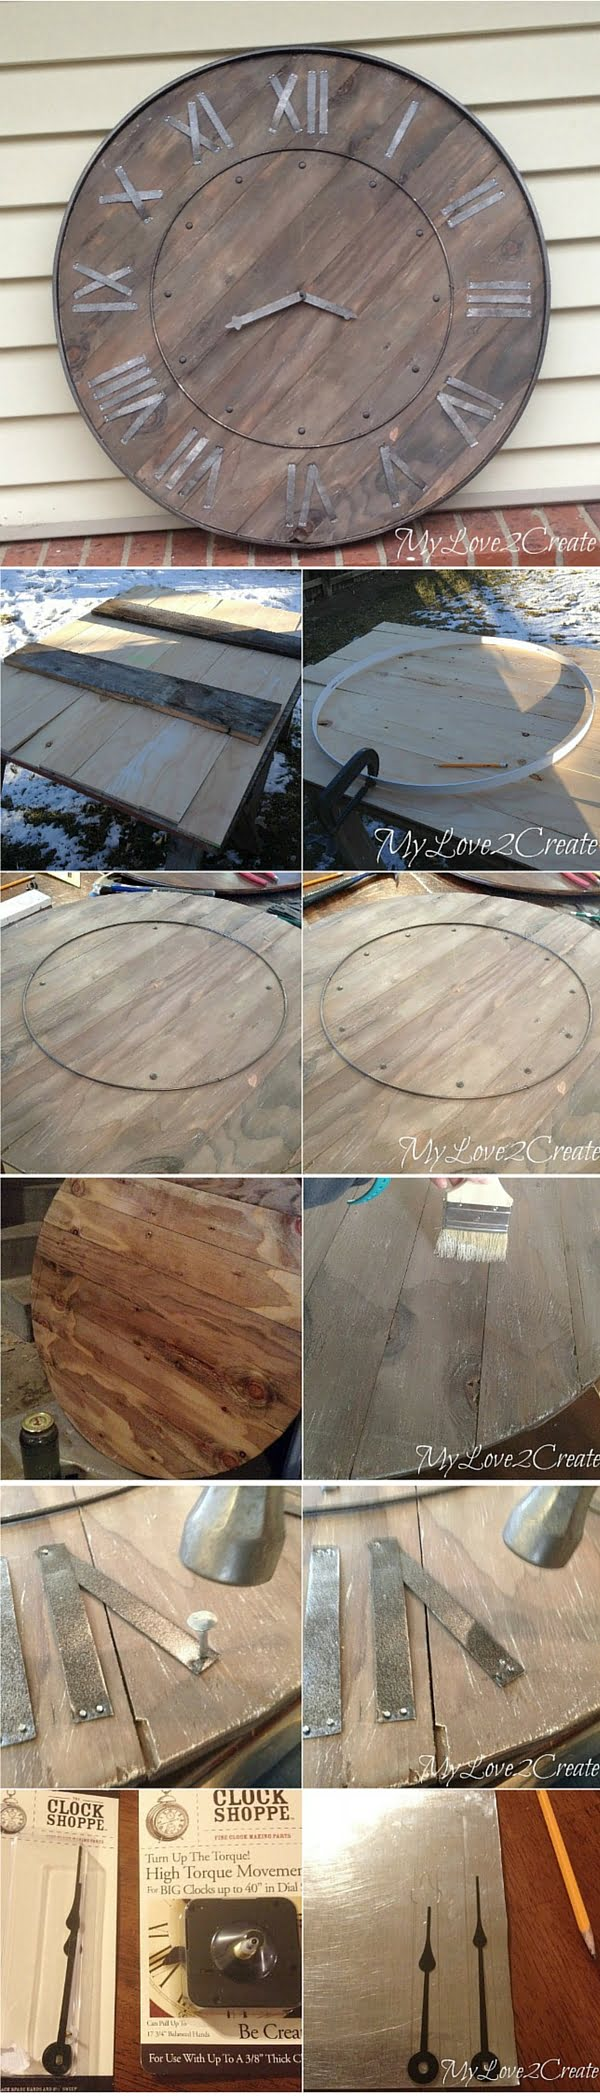 Check out the tutorial: #DIY Rustic Wall Clock #crafts #homedecor